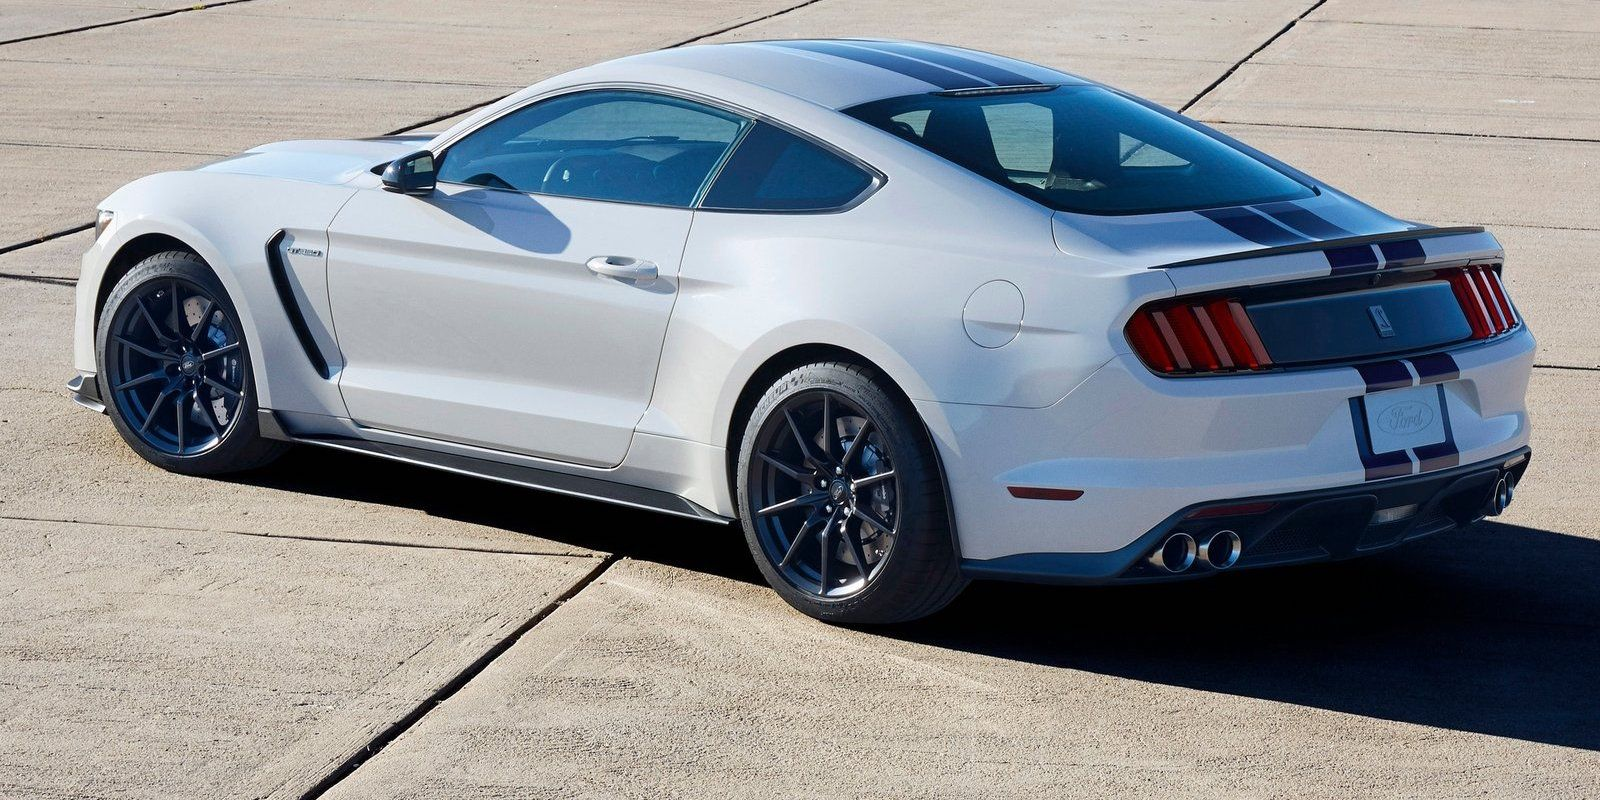 The brilliant new Shelby GT350 is arguably the performance bargain of the century. It can embarrass thoroughbread sports cars that cost way more. Even a loaded GT350R at $65,195 is reasonable.